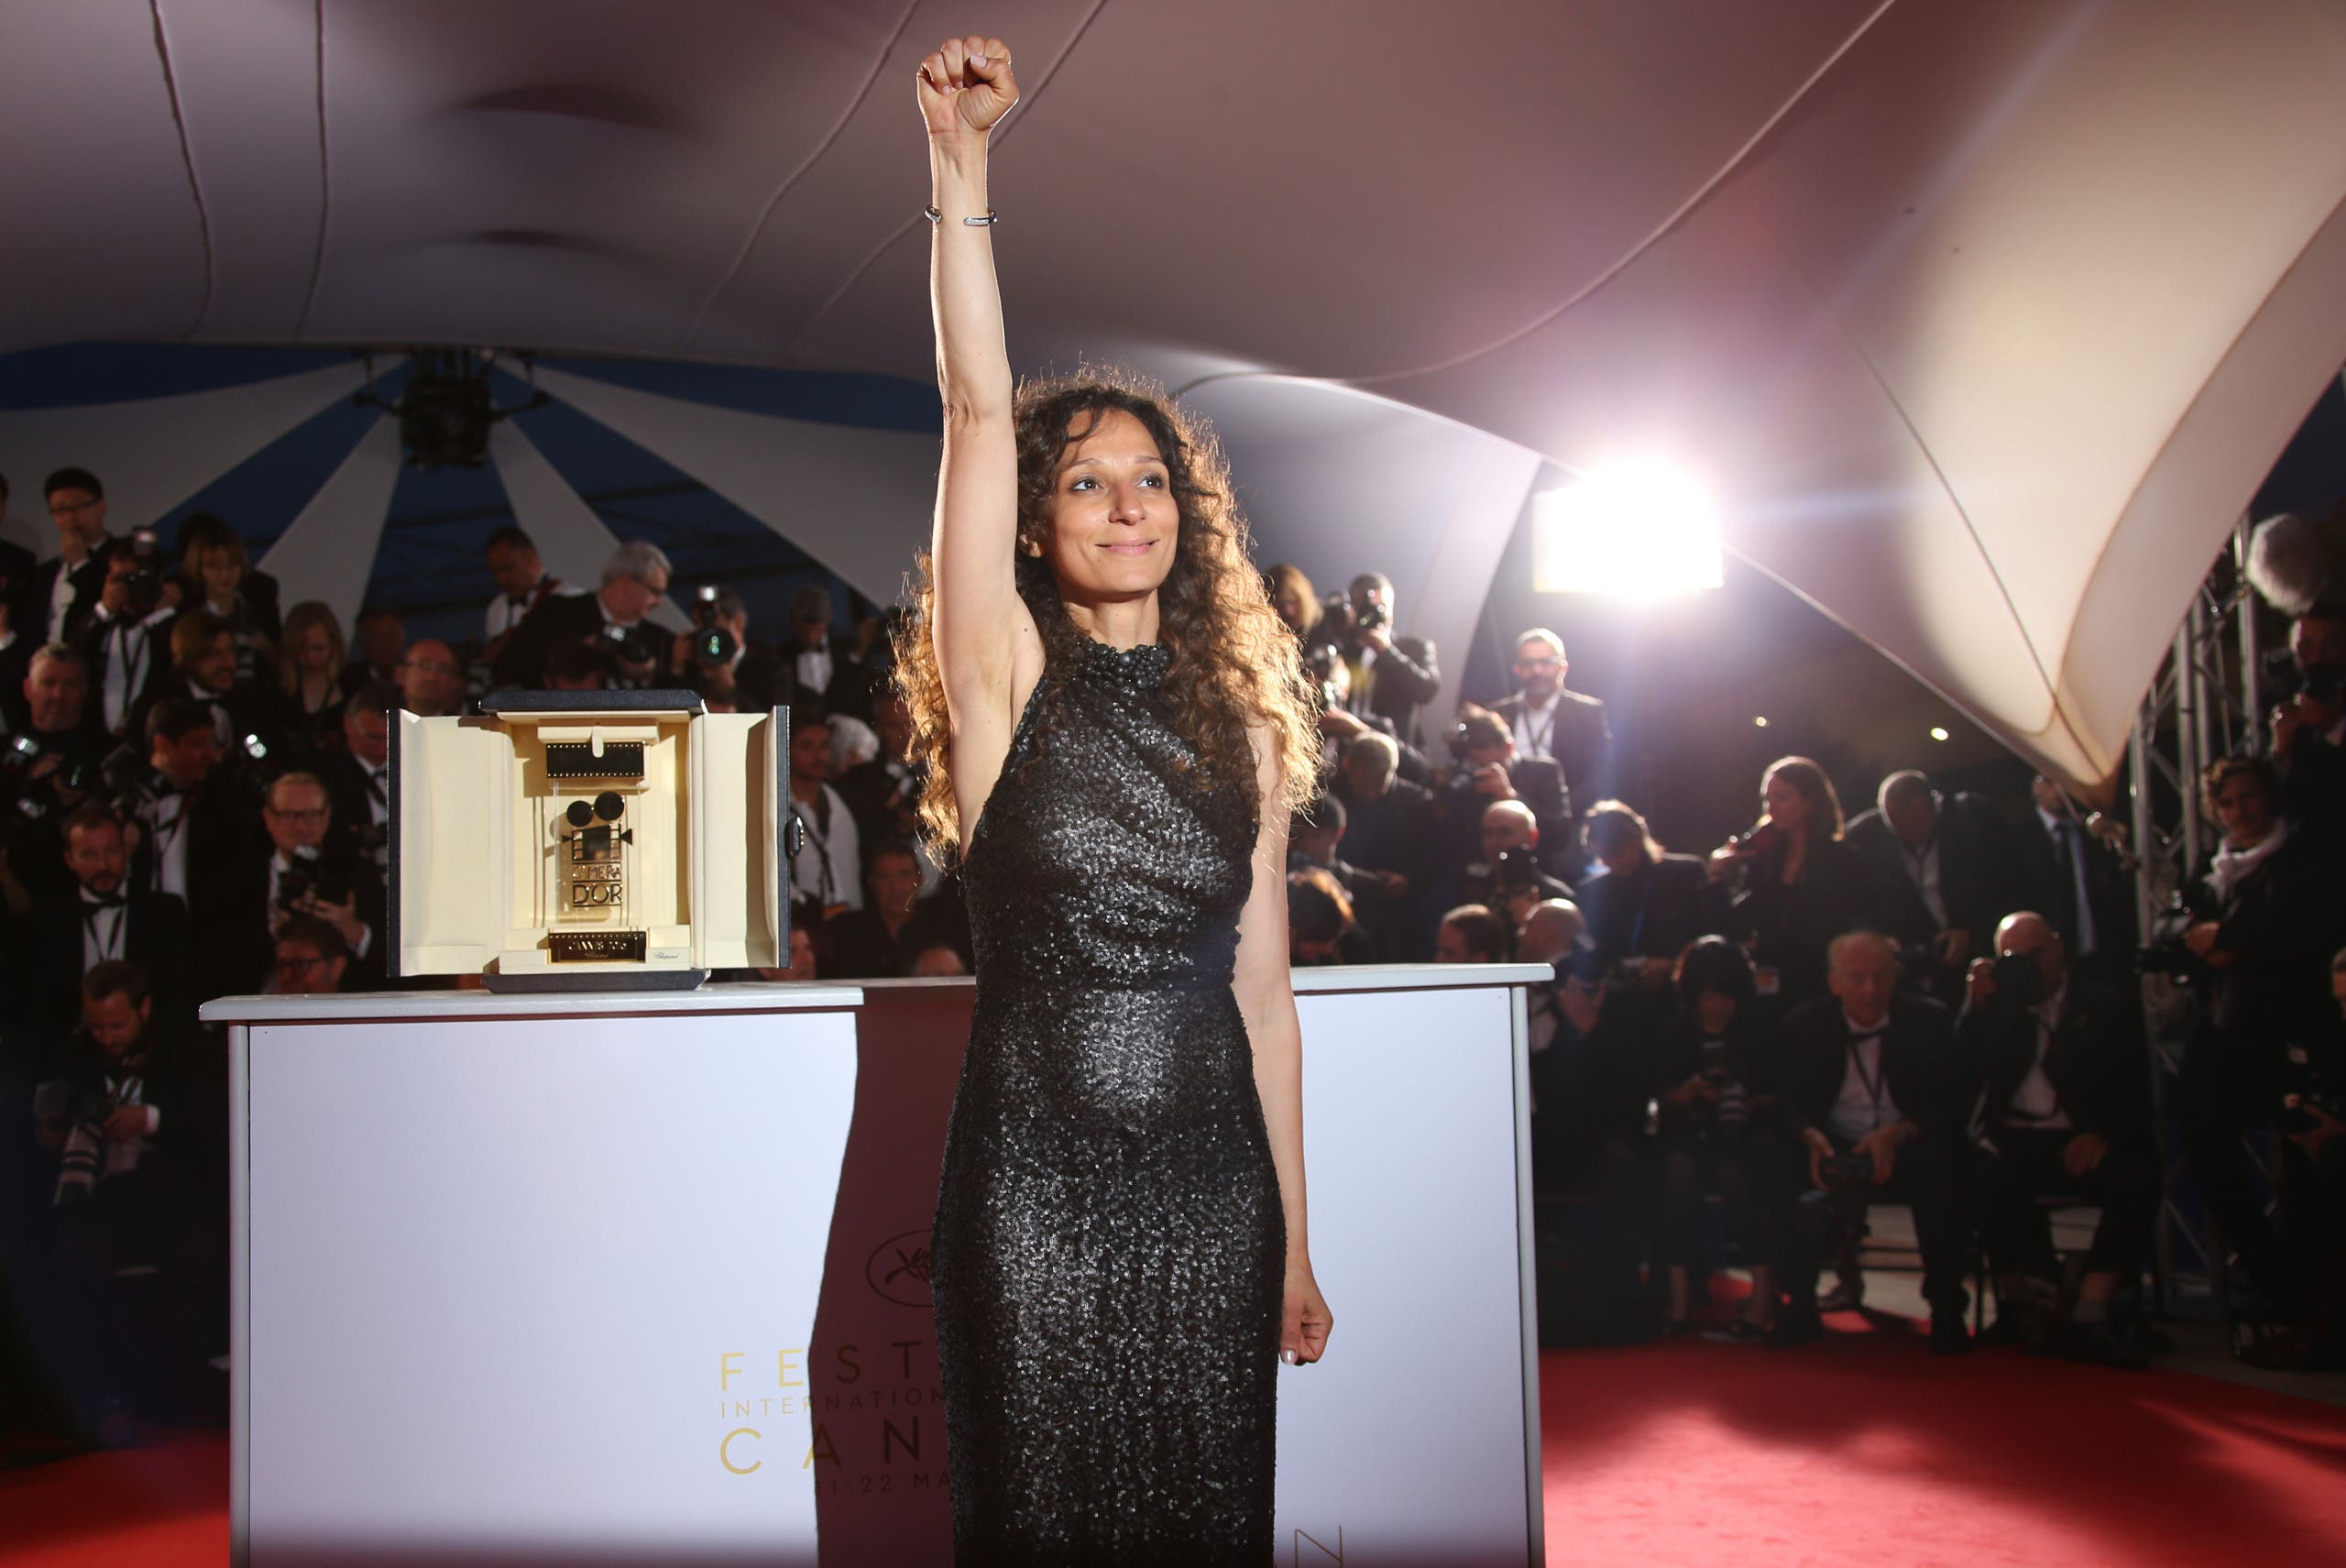 Houda Benyamina winning the Camera d'Or at the 69th Cannes Film Festival